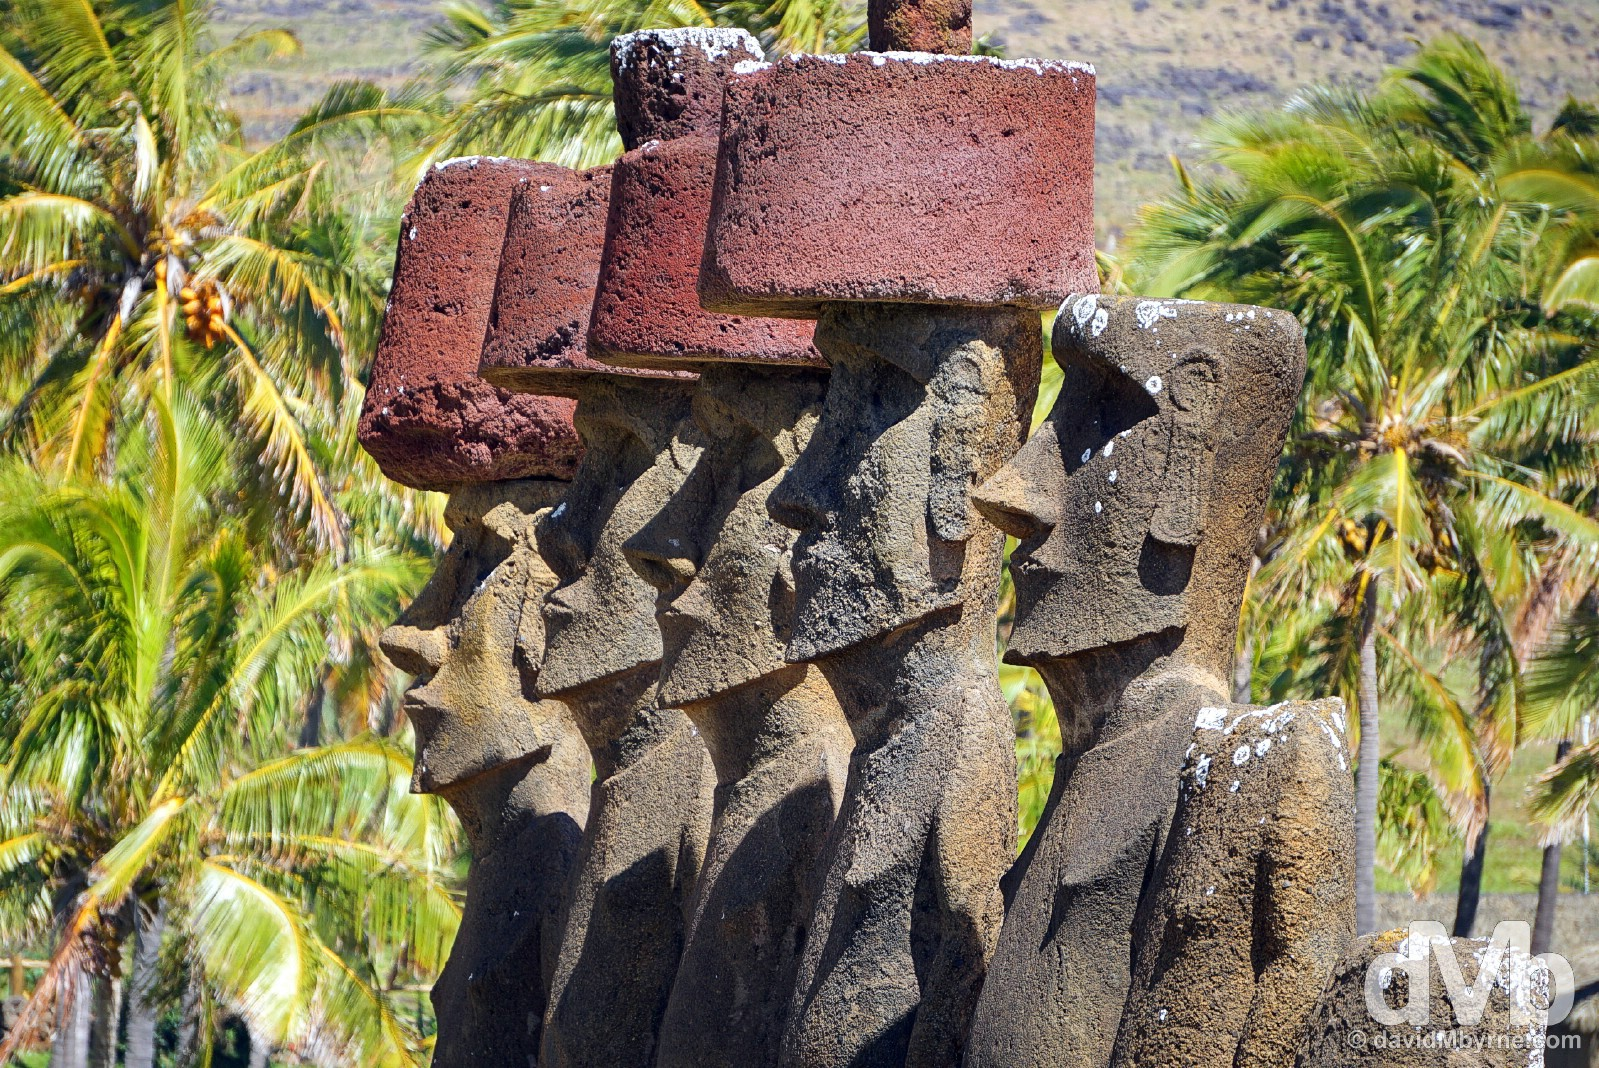 The 7 moai of Ahu Nau Nau in Anakena, Easter Island, Chile. October 1, 2015.